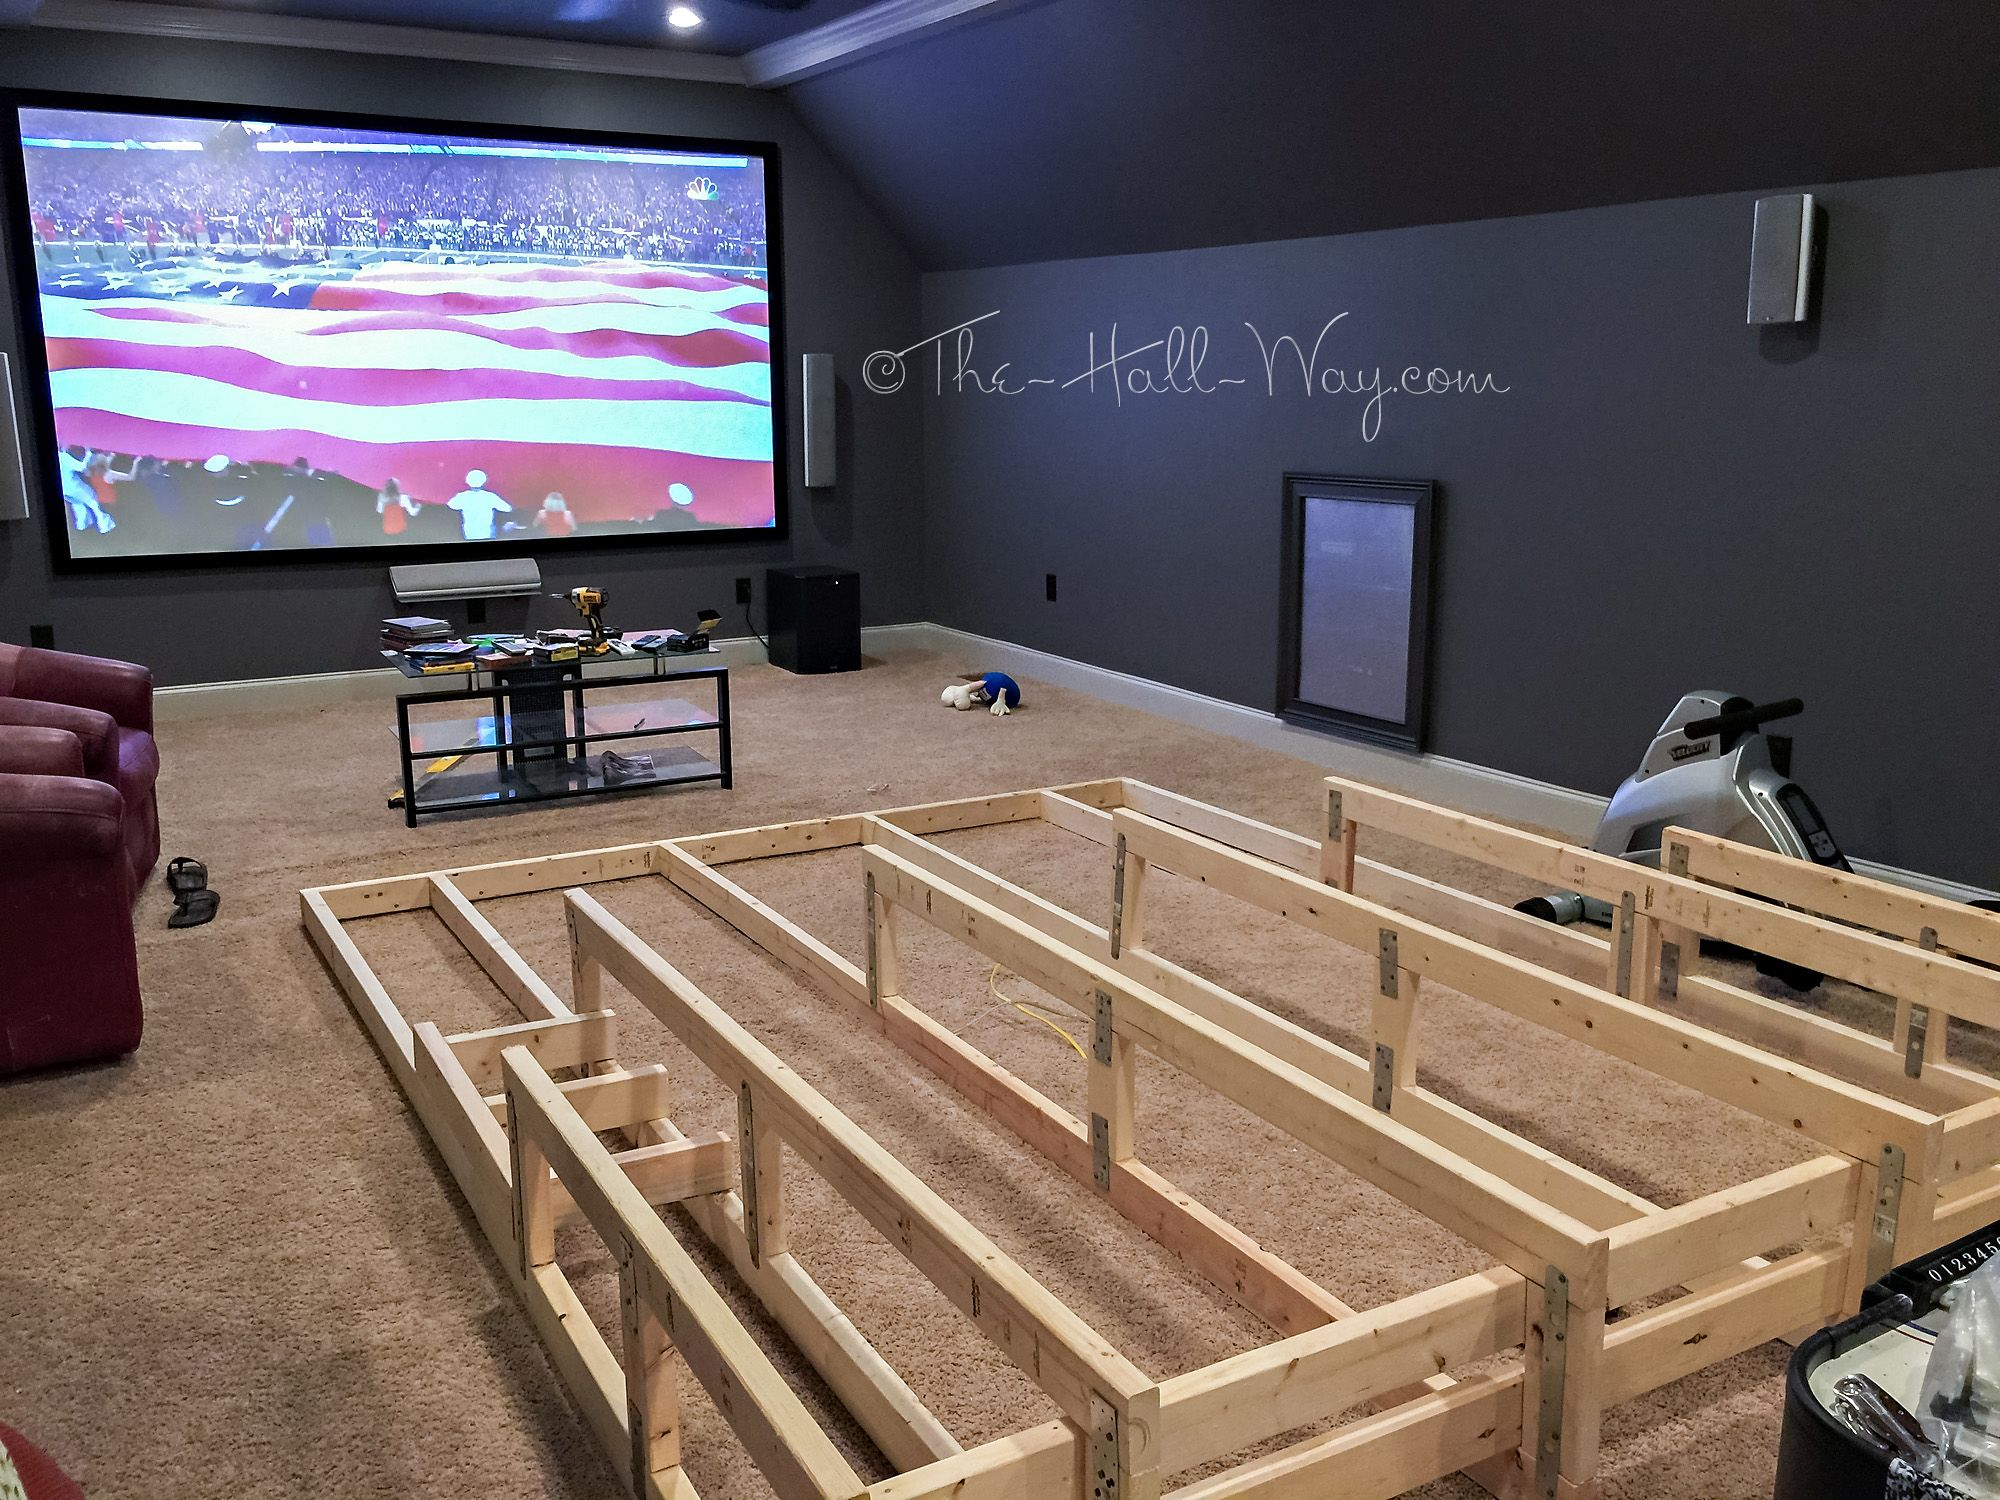 media home theater riser diy i would add running lights under each stair for soft lighting and. Black Bedroom Furniture Sets. Home Design Ideas